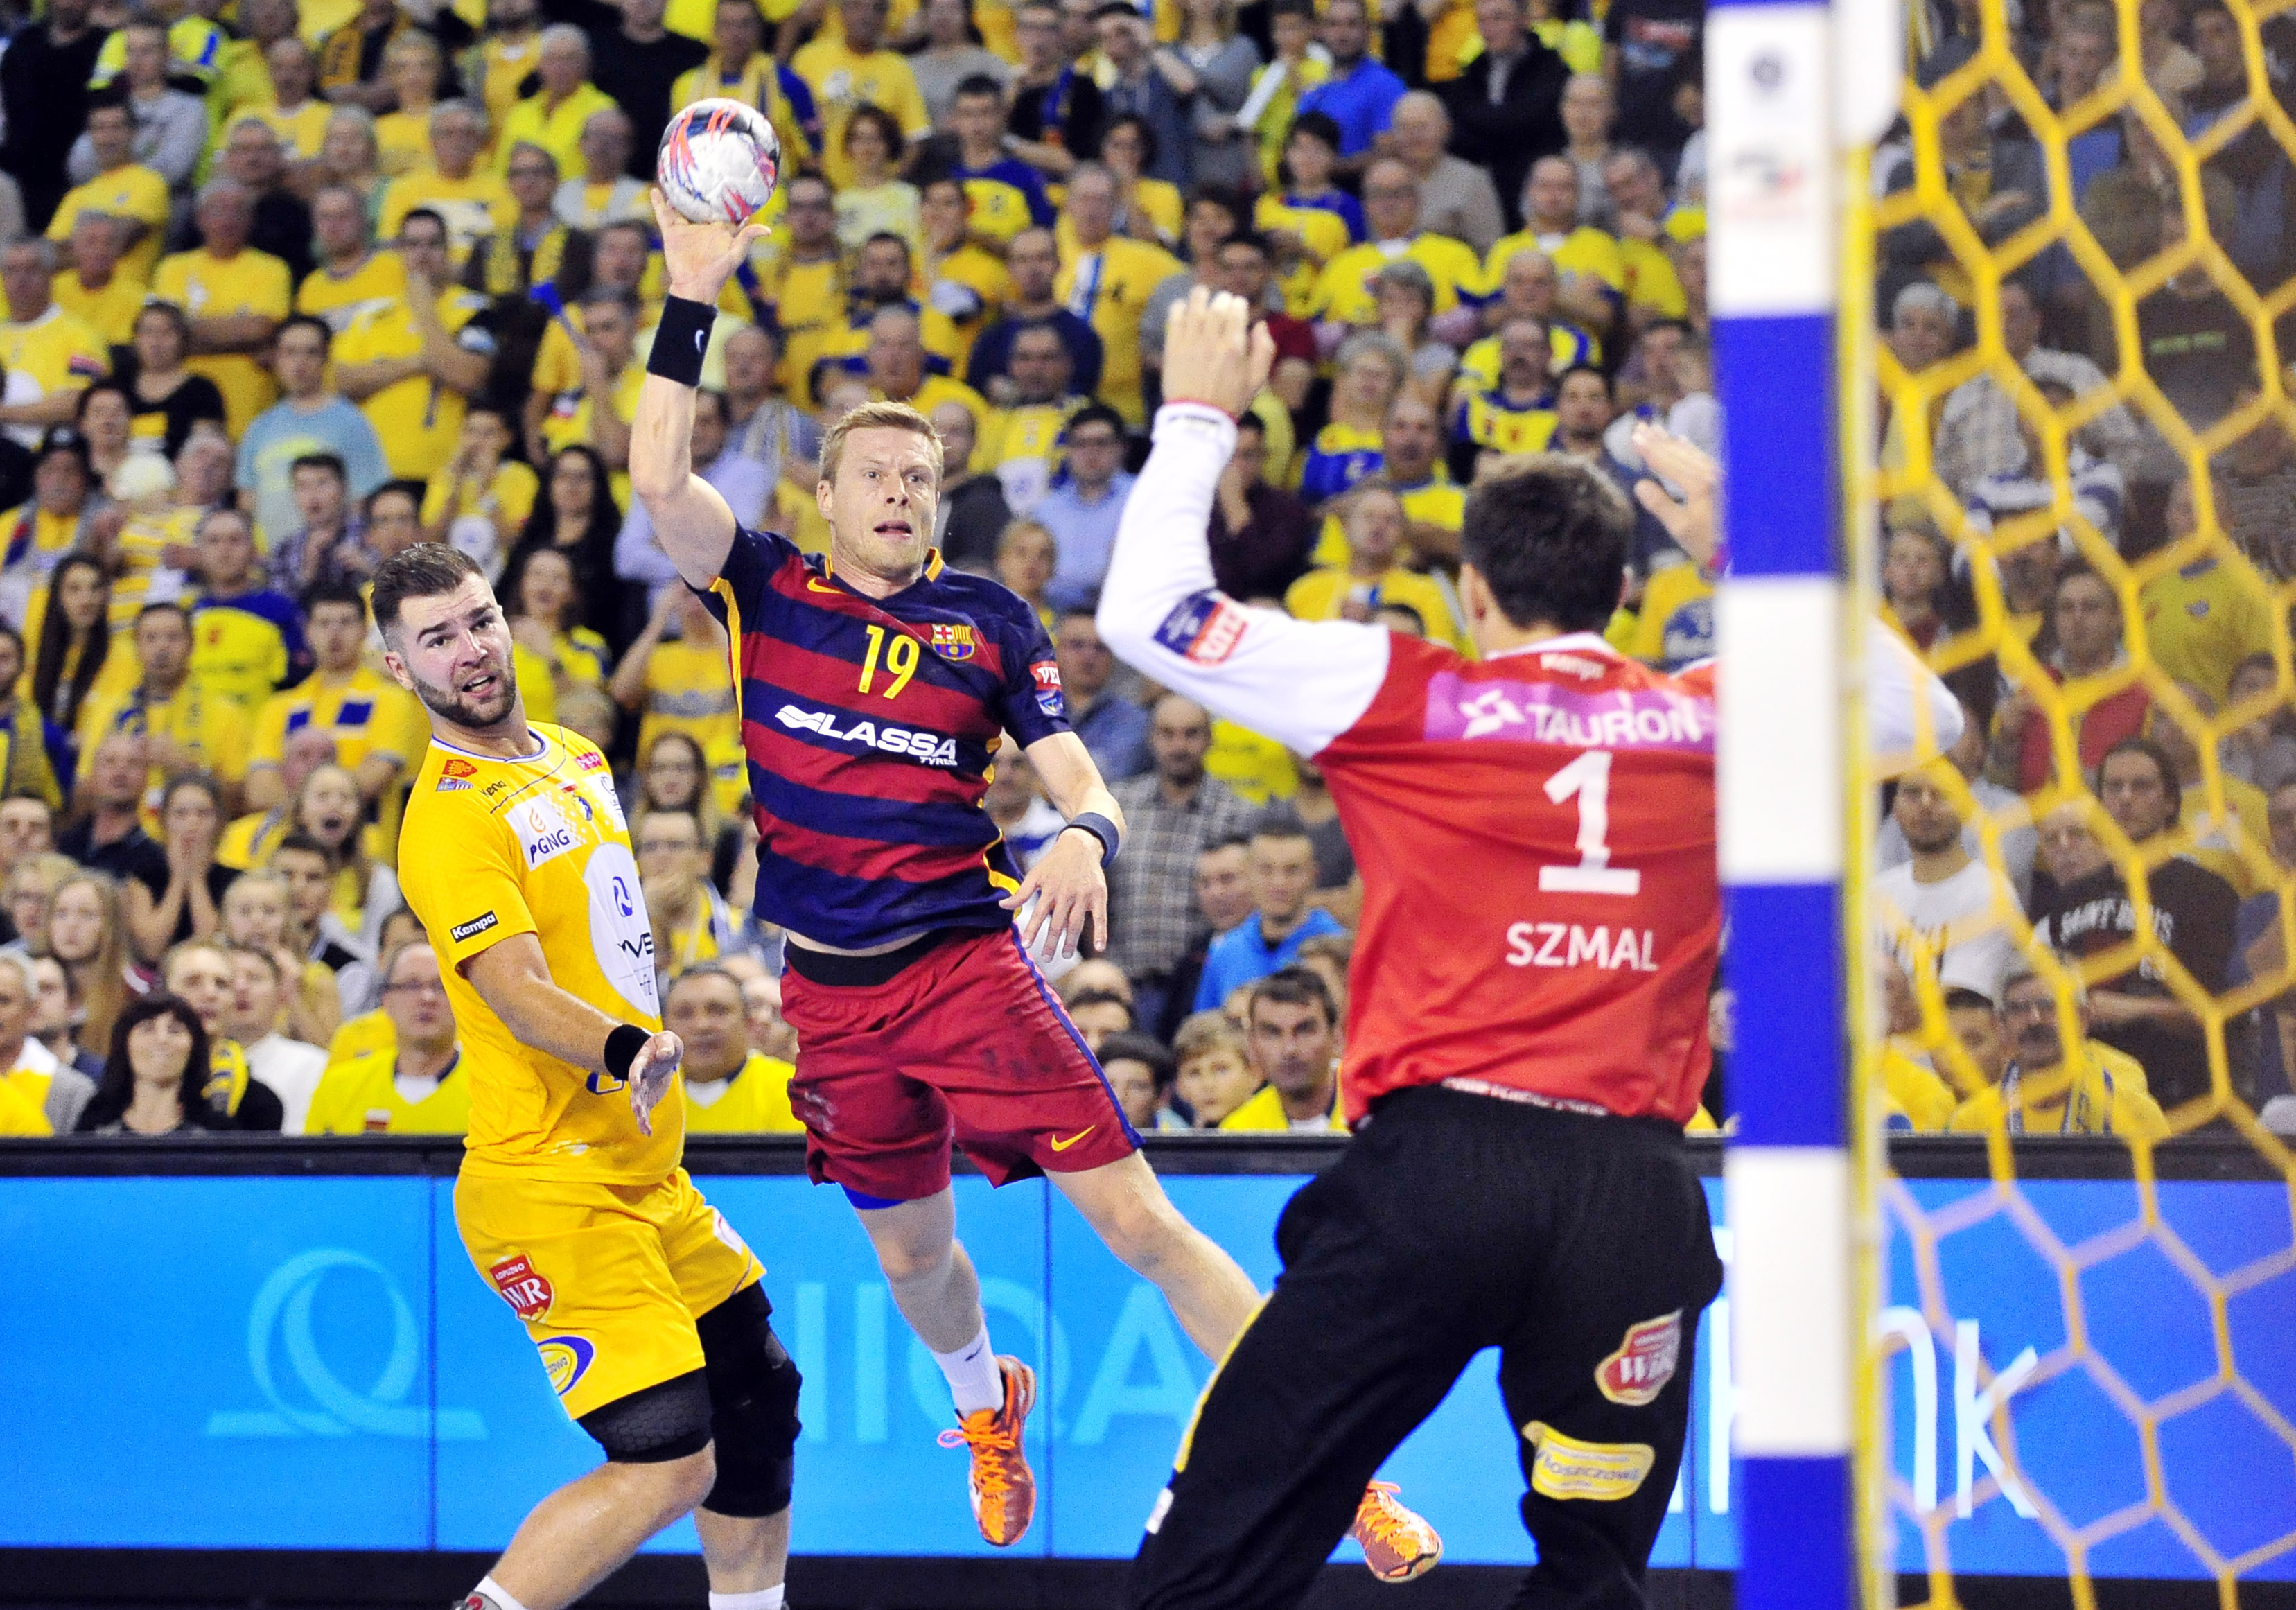 2015.10.17 KIELCE PILKA RECZNA HANDBALL LIGA MISTRZOW MENS VELUX EHF CHAMPIONS LEAGUE MECZ VIVE TAURON KIELCE - FC BARCELONA N/Z GUDJON VALUR SIGURDSSON FOTO NORBERT BARCZYK / PRESS FOCUS